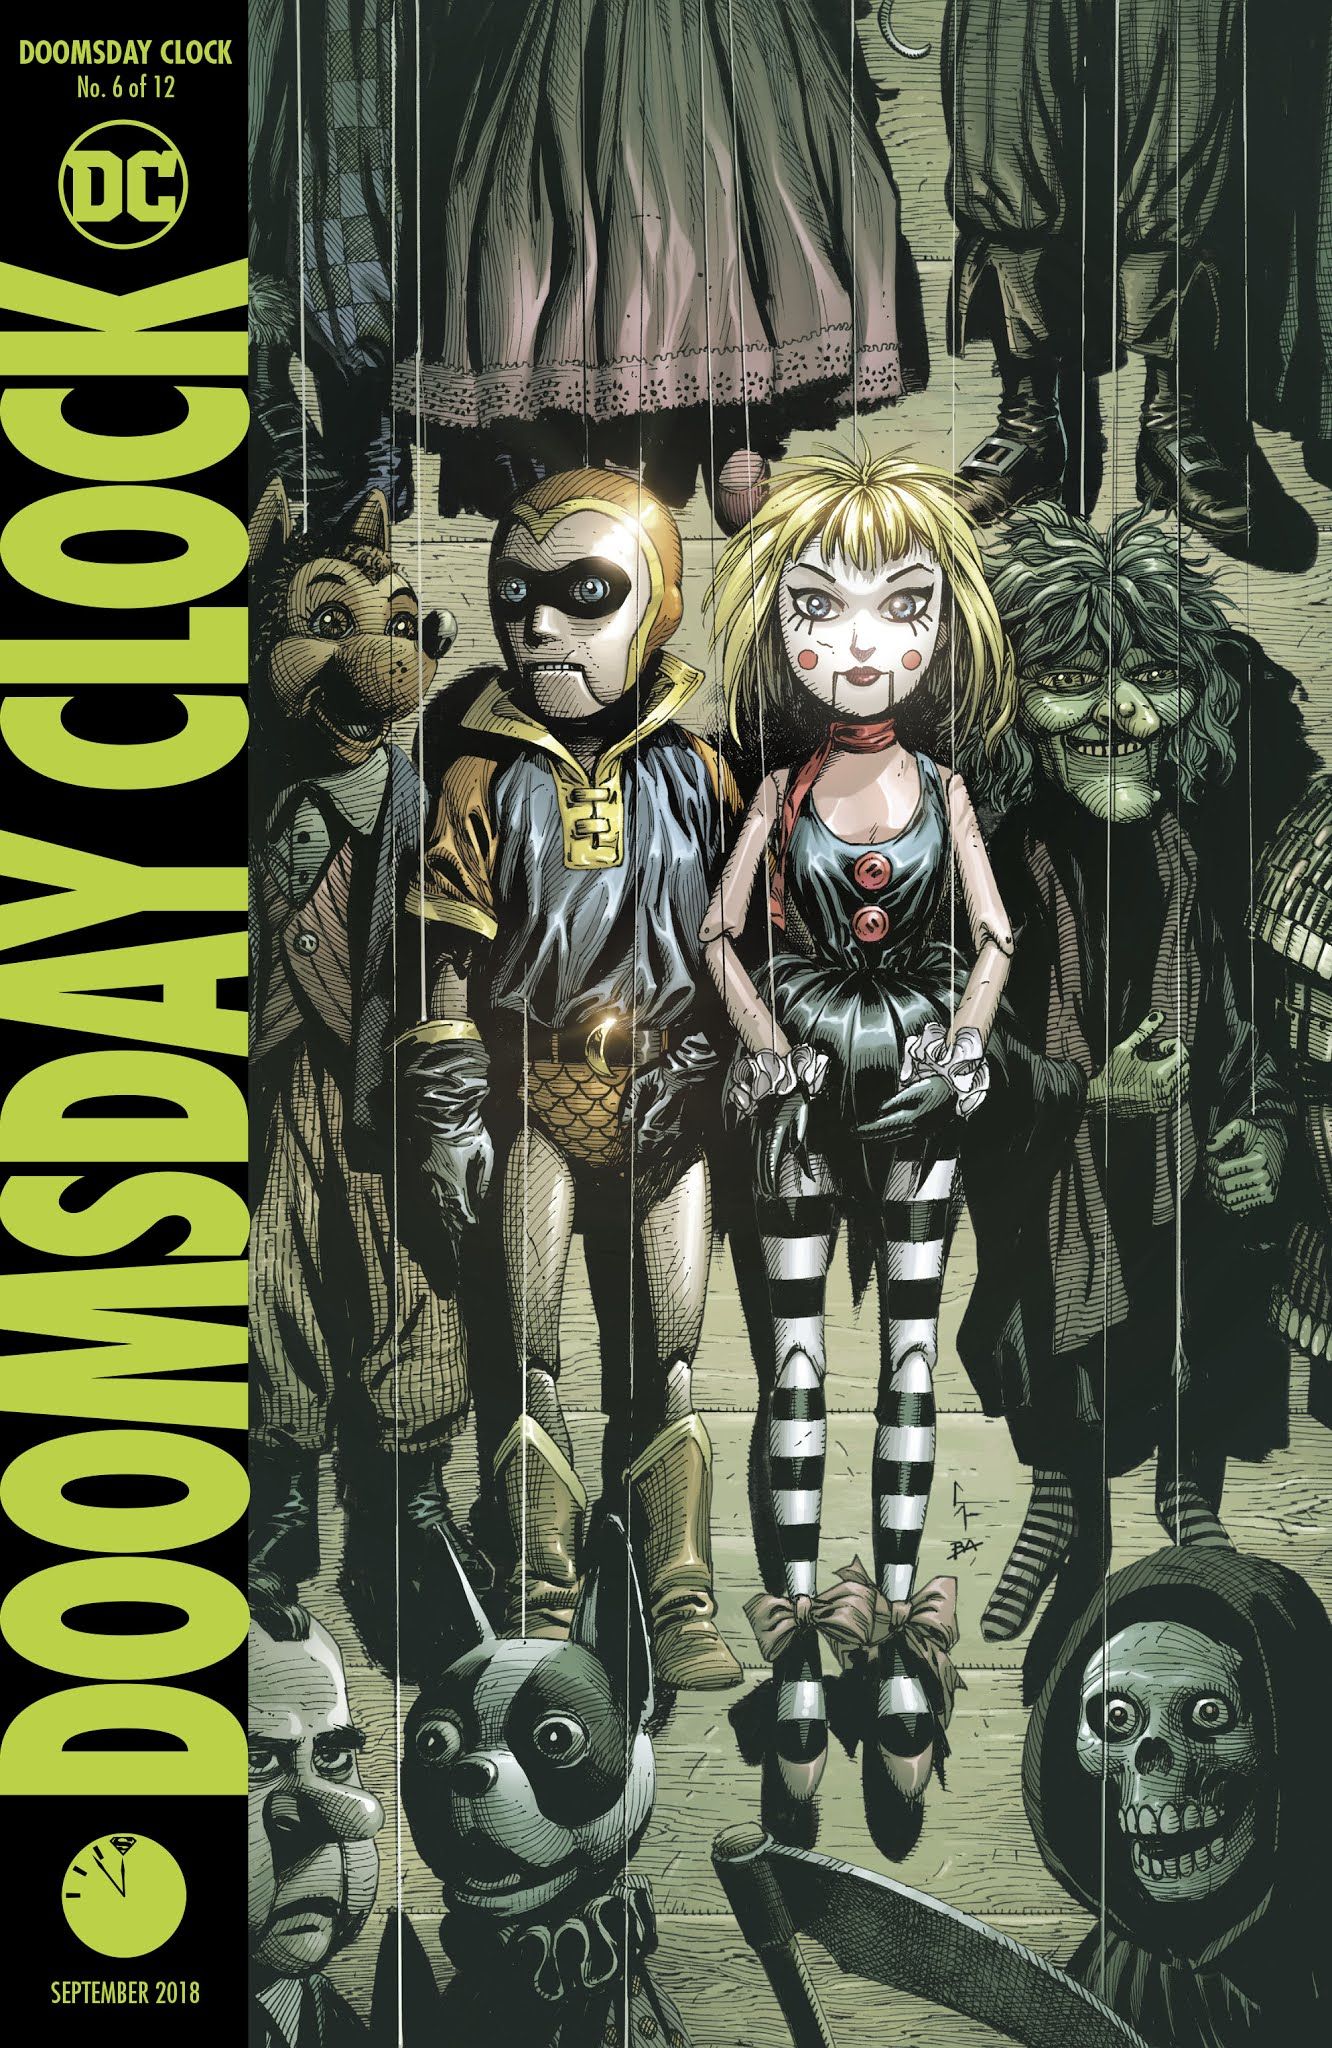 Doomsday Clock Issue 6 Viewcomic Reading Comics Online For Free 2019